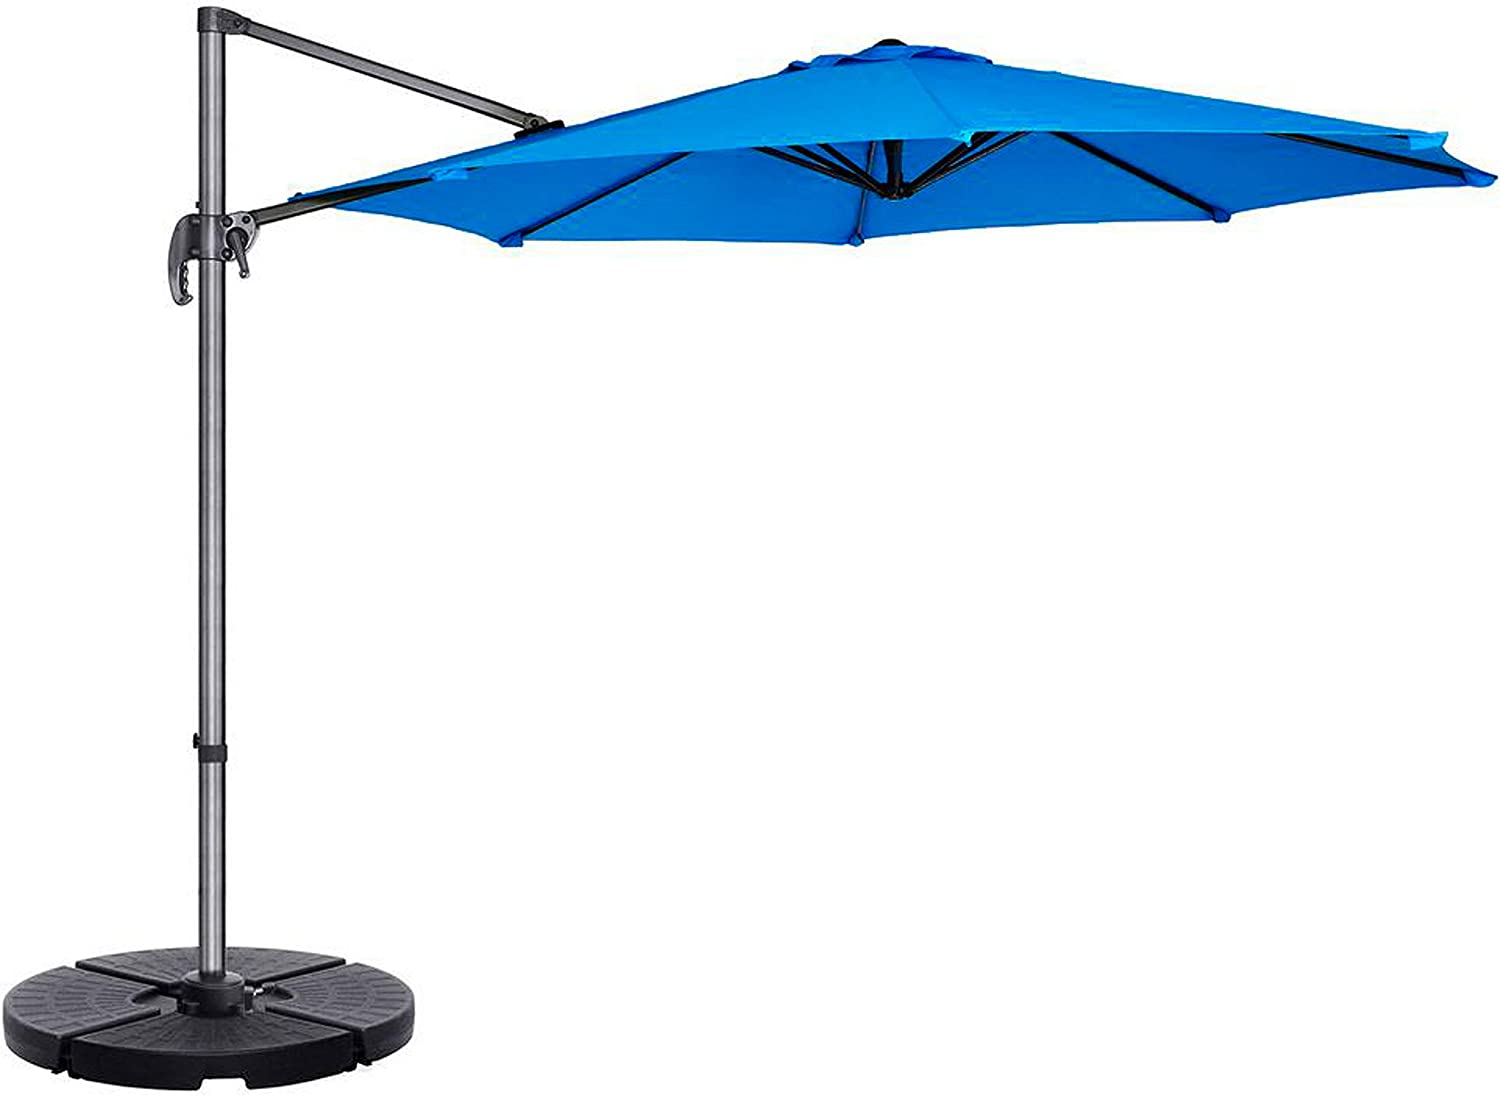 """Formosa Covers Replacement Umbrella Canopy for 11ft 8 Rib Supported Bar Cantilever Market Outdoor Patio in Capri Blue Rib Length 64"""" to 66"""" Premium Vibrant Olefin Fabric (Canopy Only) (11ft 8 Ribs)"""